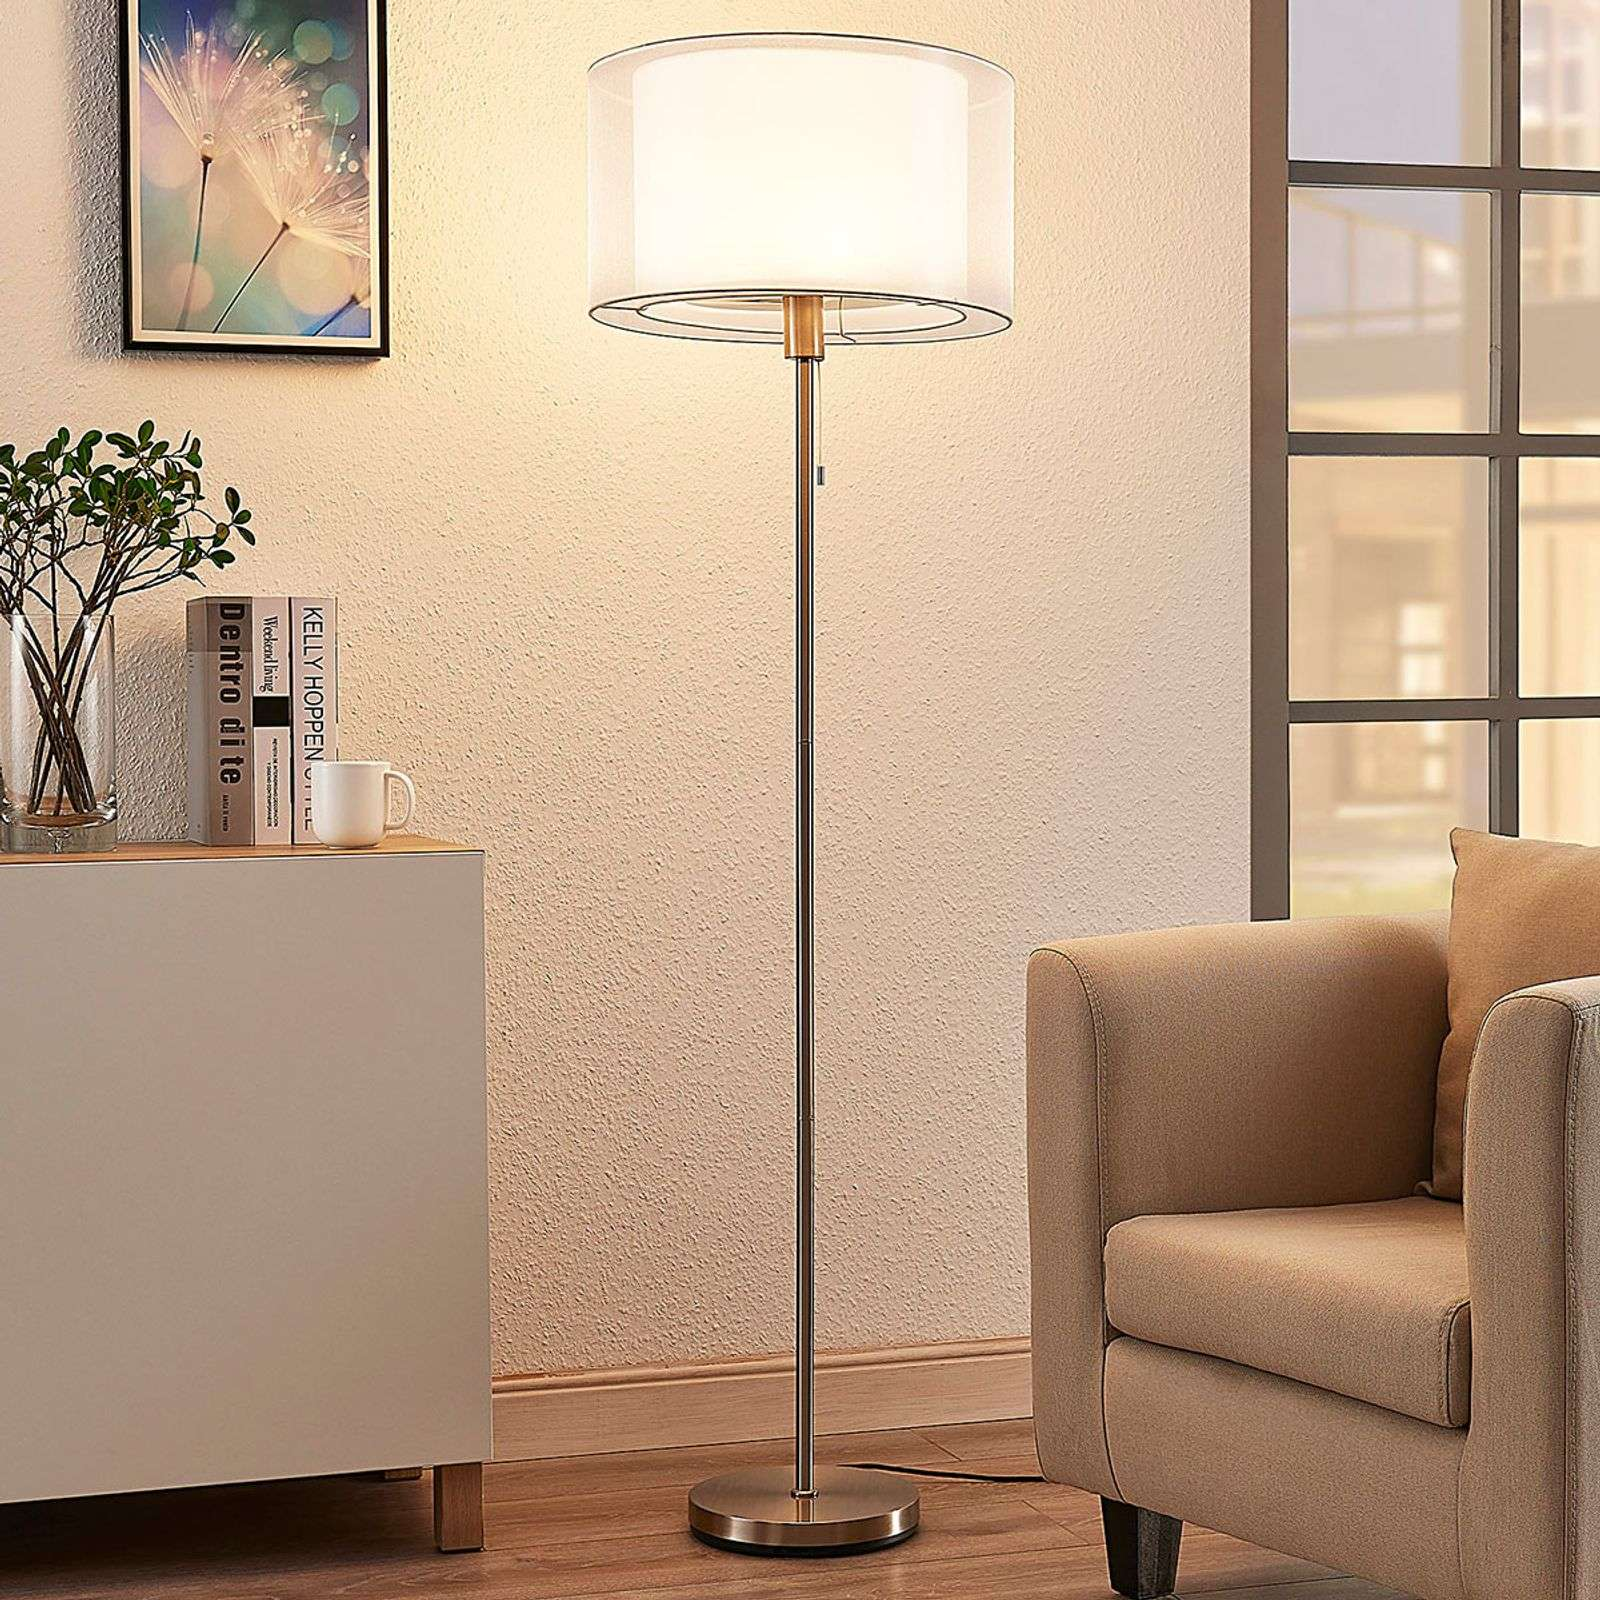 Lampadaire LED Amon abat-jour tissu blanc dimmable